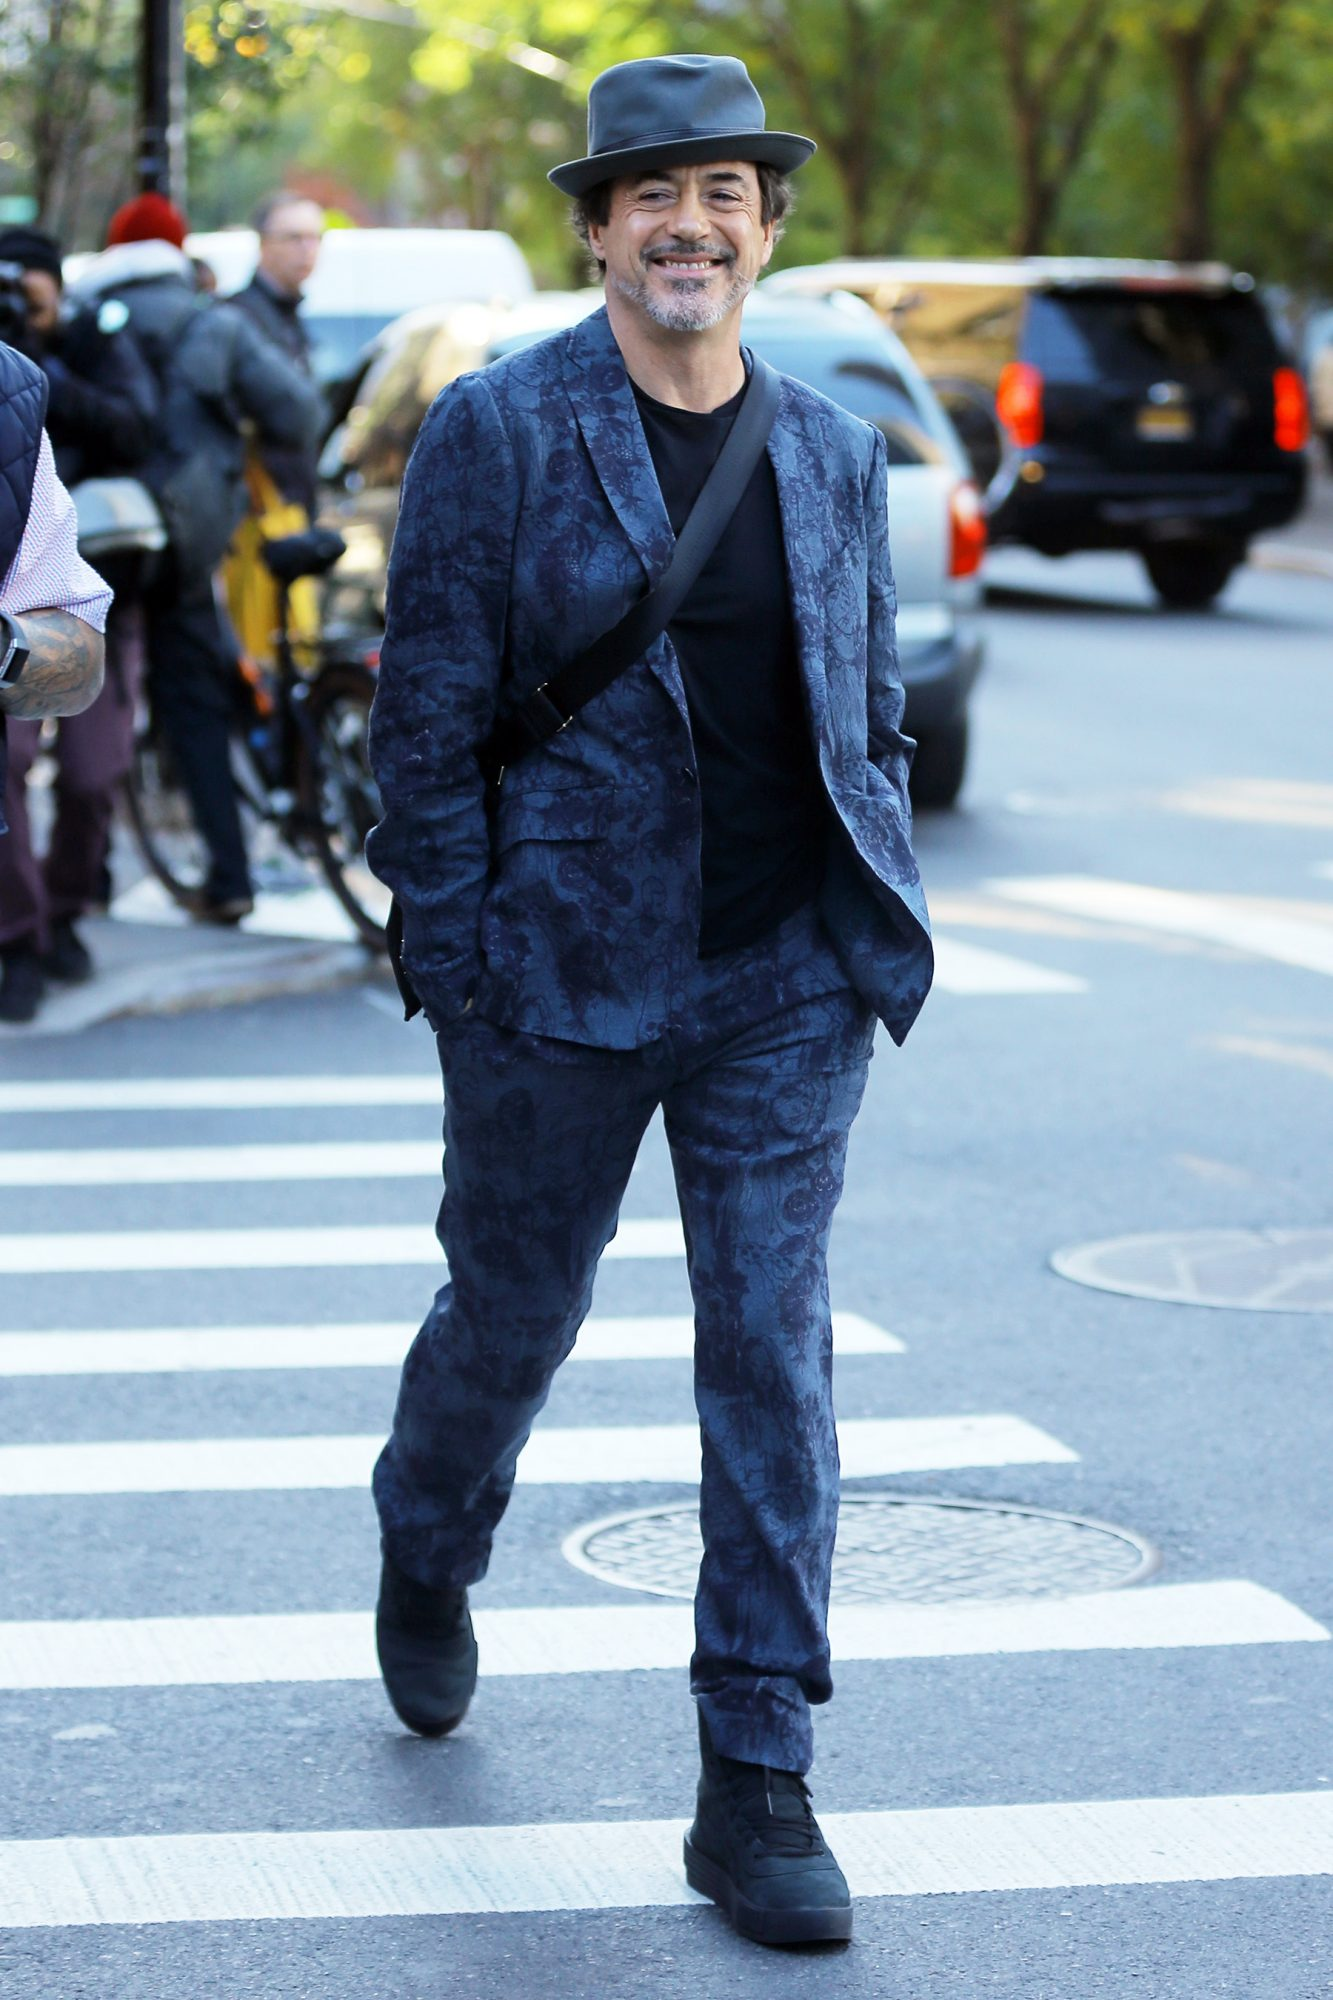 Actor Robert Downey, Jr. leaves the Greenwich Hotel in New York City, New York on November 8, 2018.